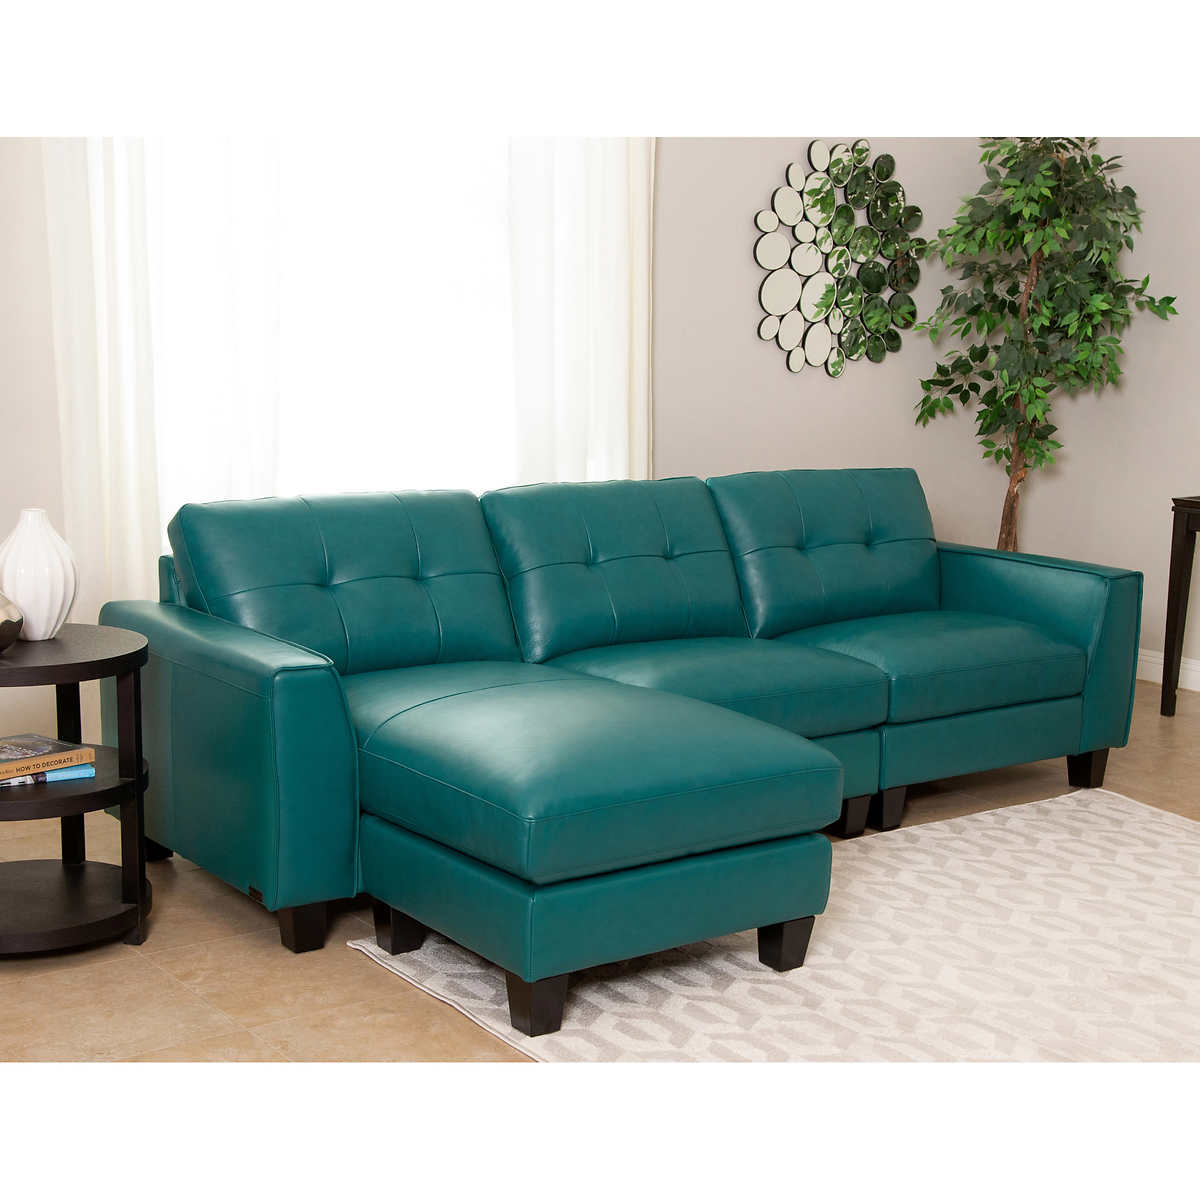 Leather Sectional Sofa Gta: Turquoise Leather Sectional Sofa Wonderful Turquoise